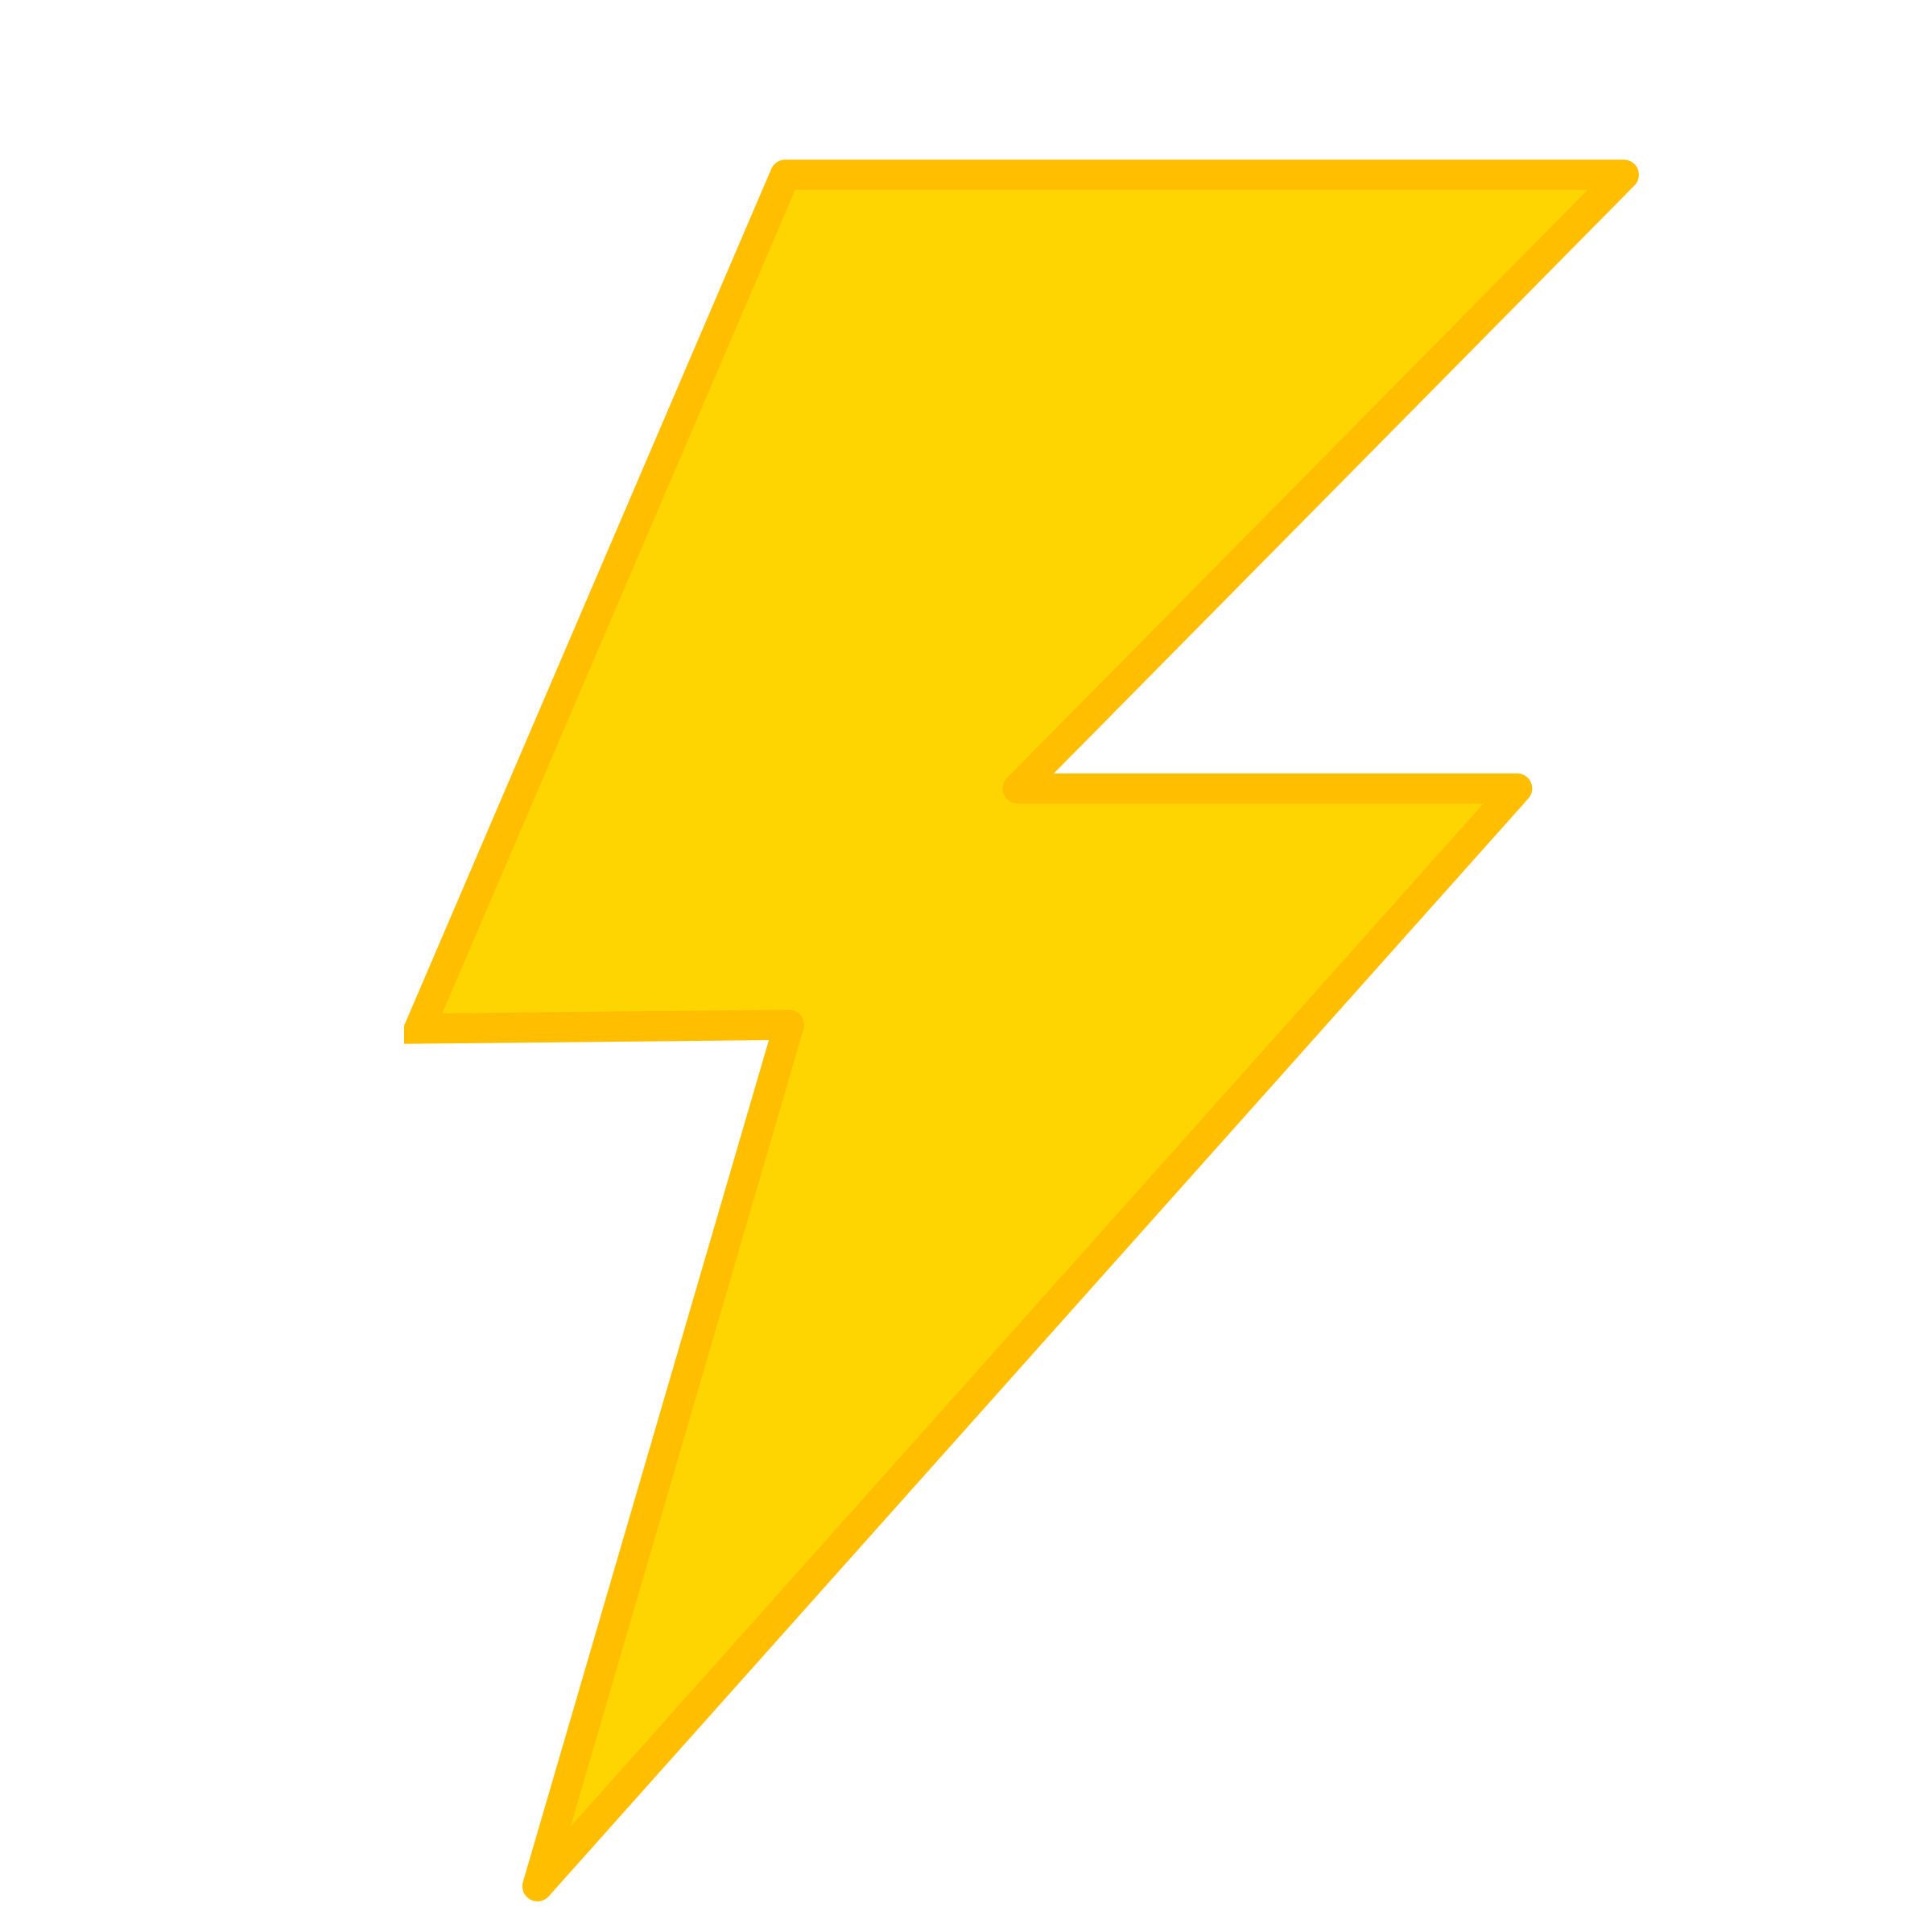 yellow lightning png 44039 free icons and png backgrounds lightning bolt vector image free lightning bolt vector file